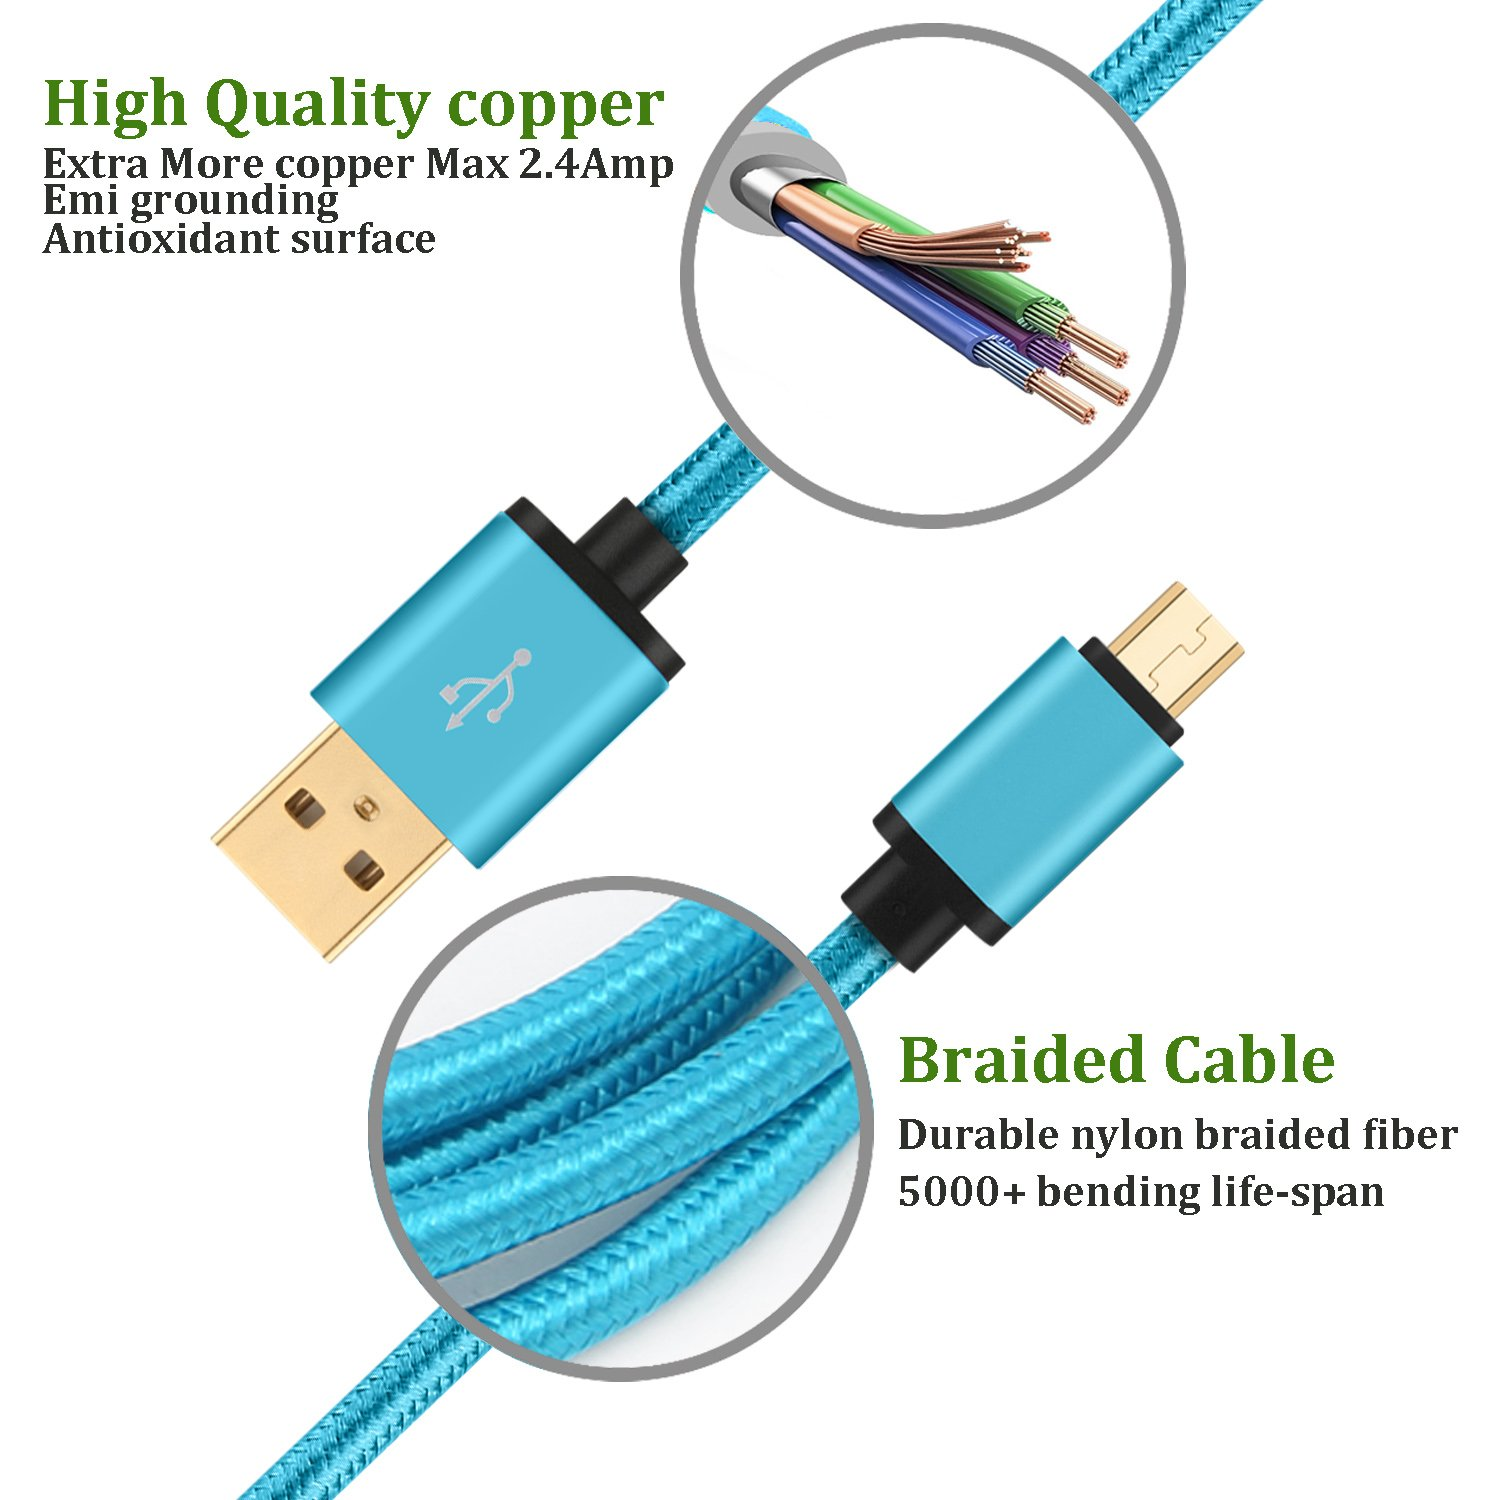 Amazon.com: HI-CABLE Micro USB Cable 10Ft Long Braided Charger Cord ...